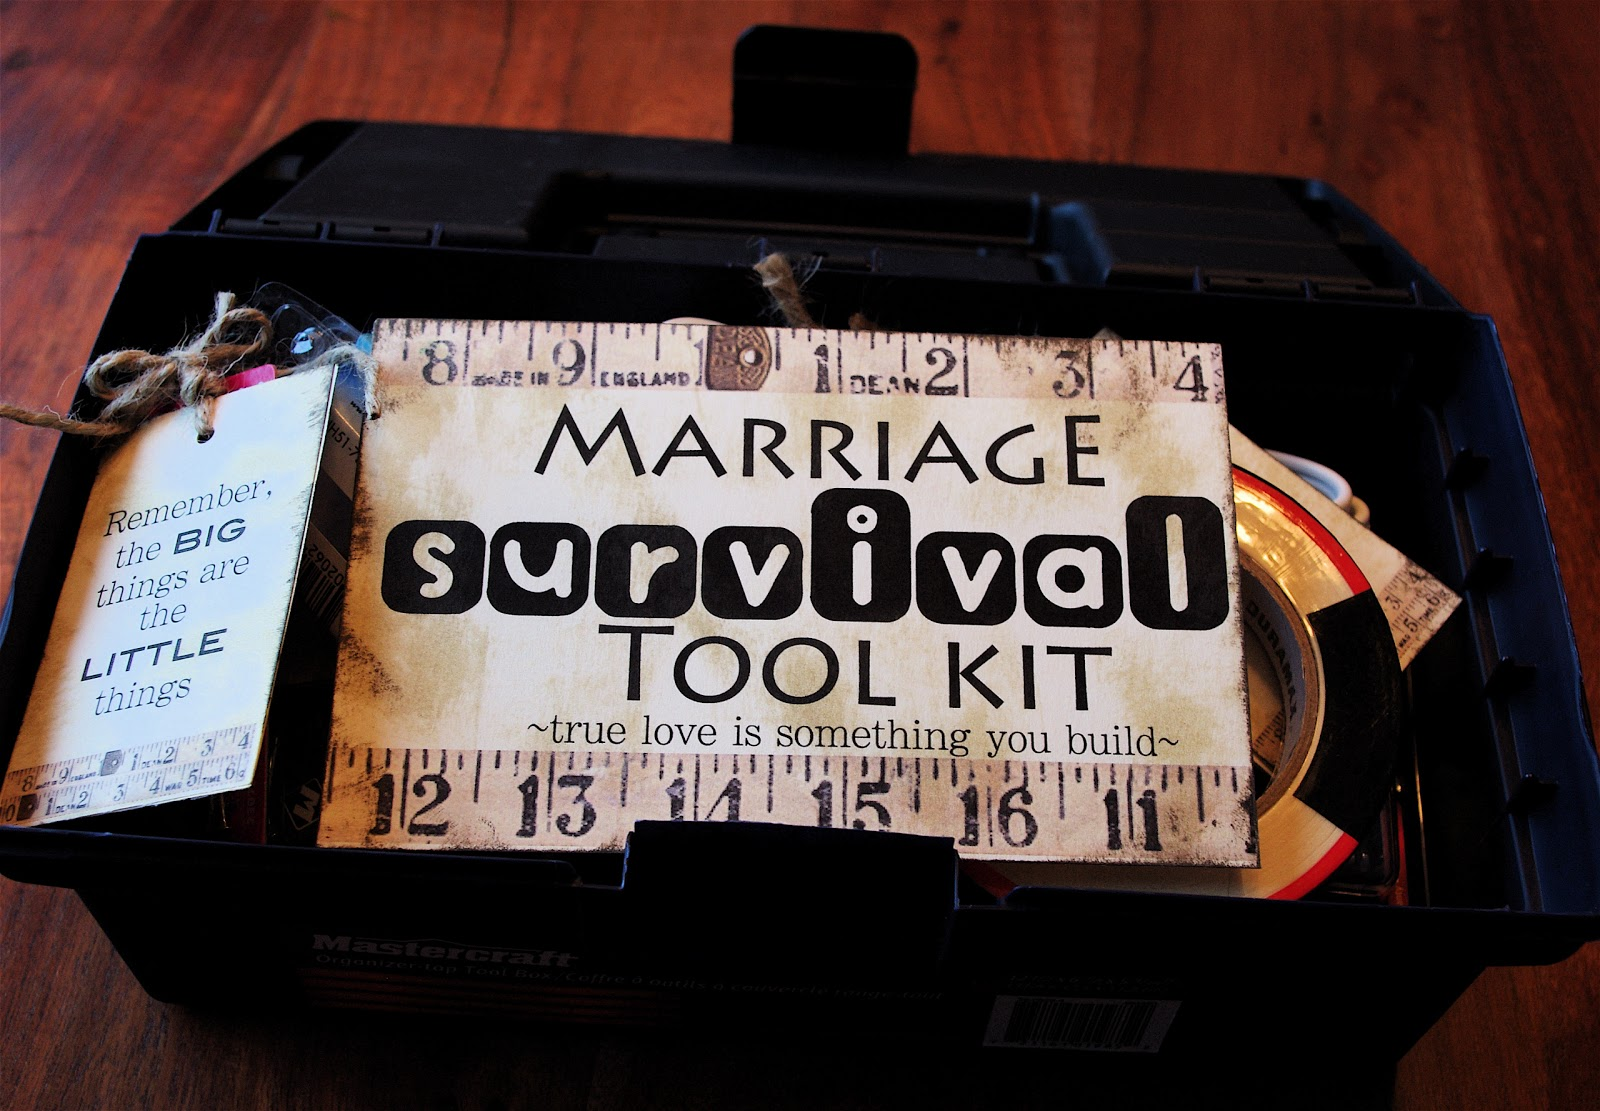 Wedding Gift Ideas For Bride From Friends : ... marriage survival tool kit together this was for a wedding gift but